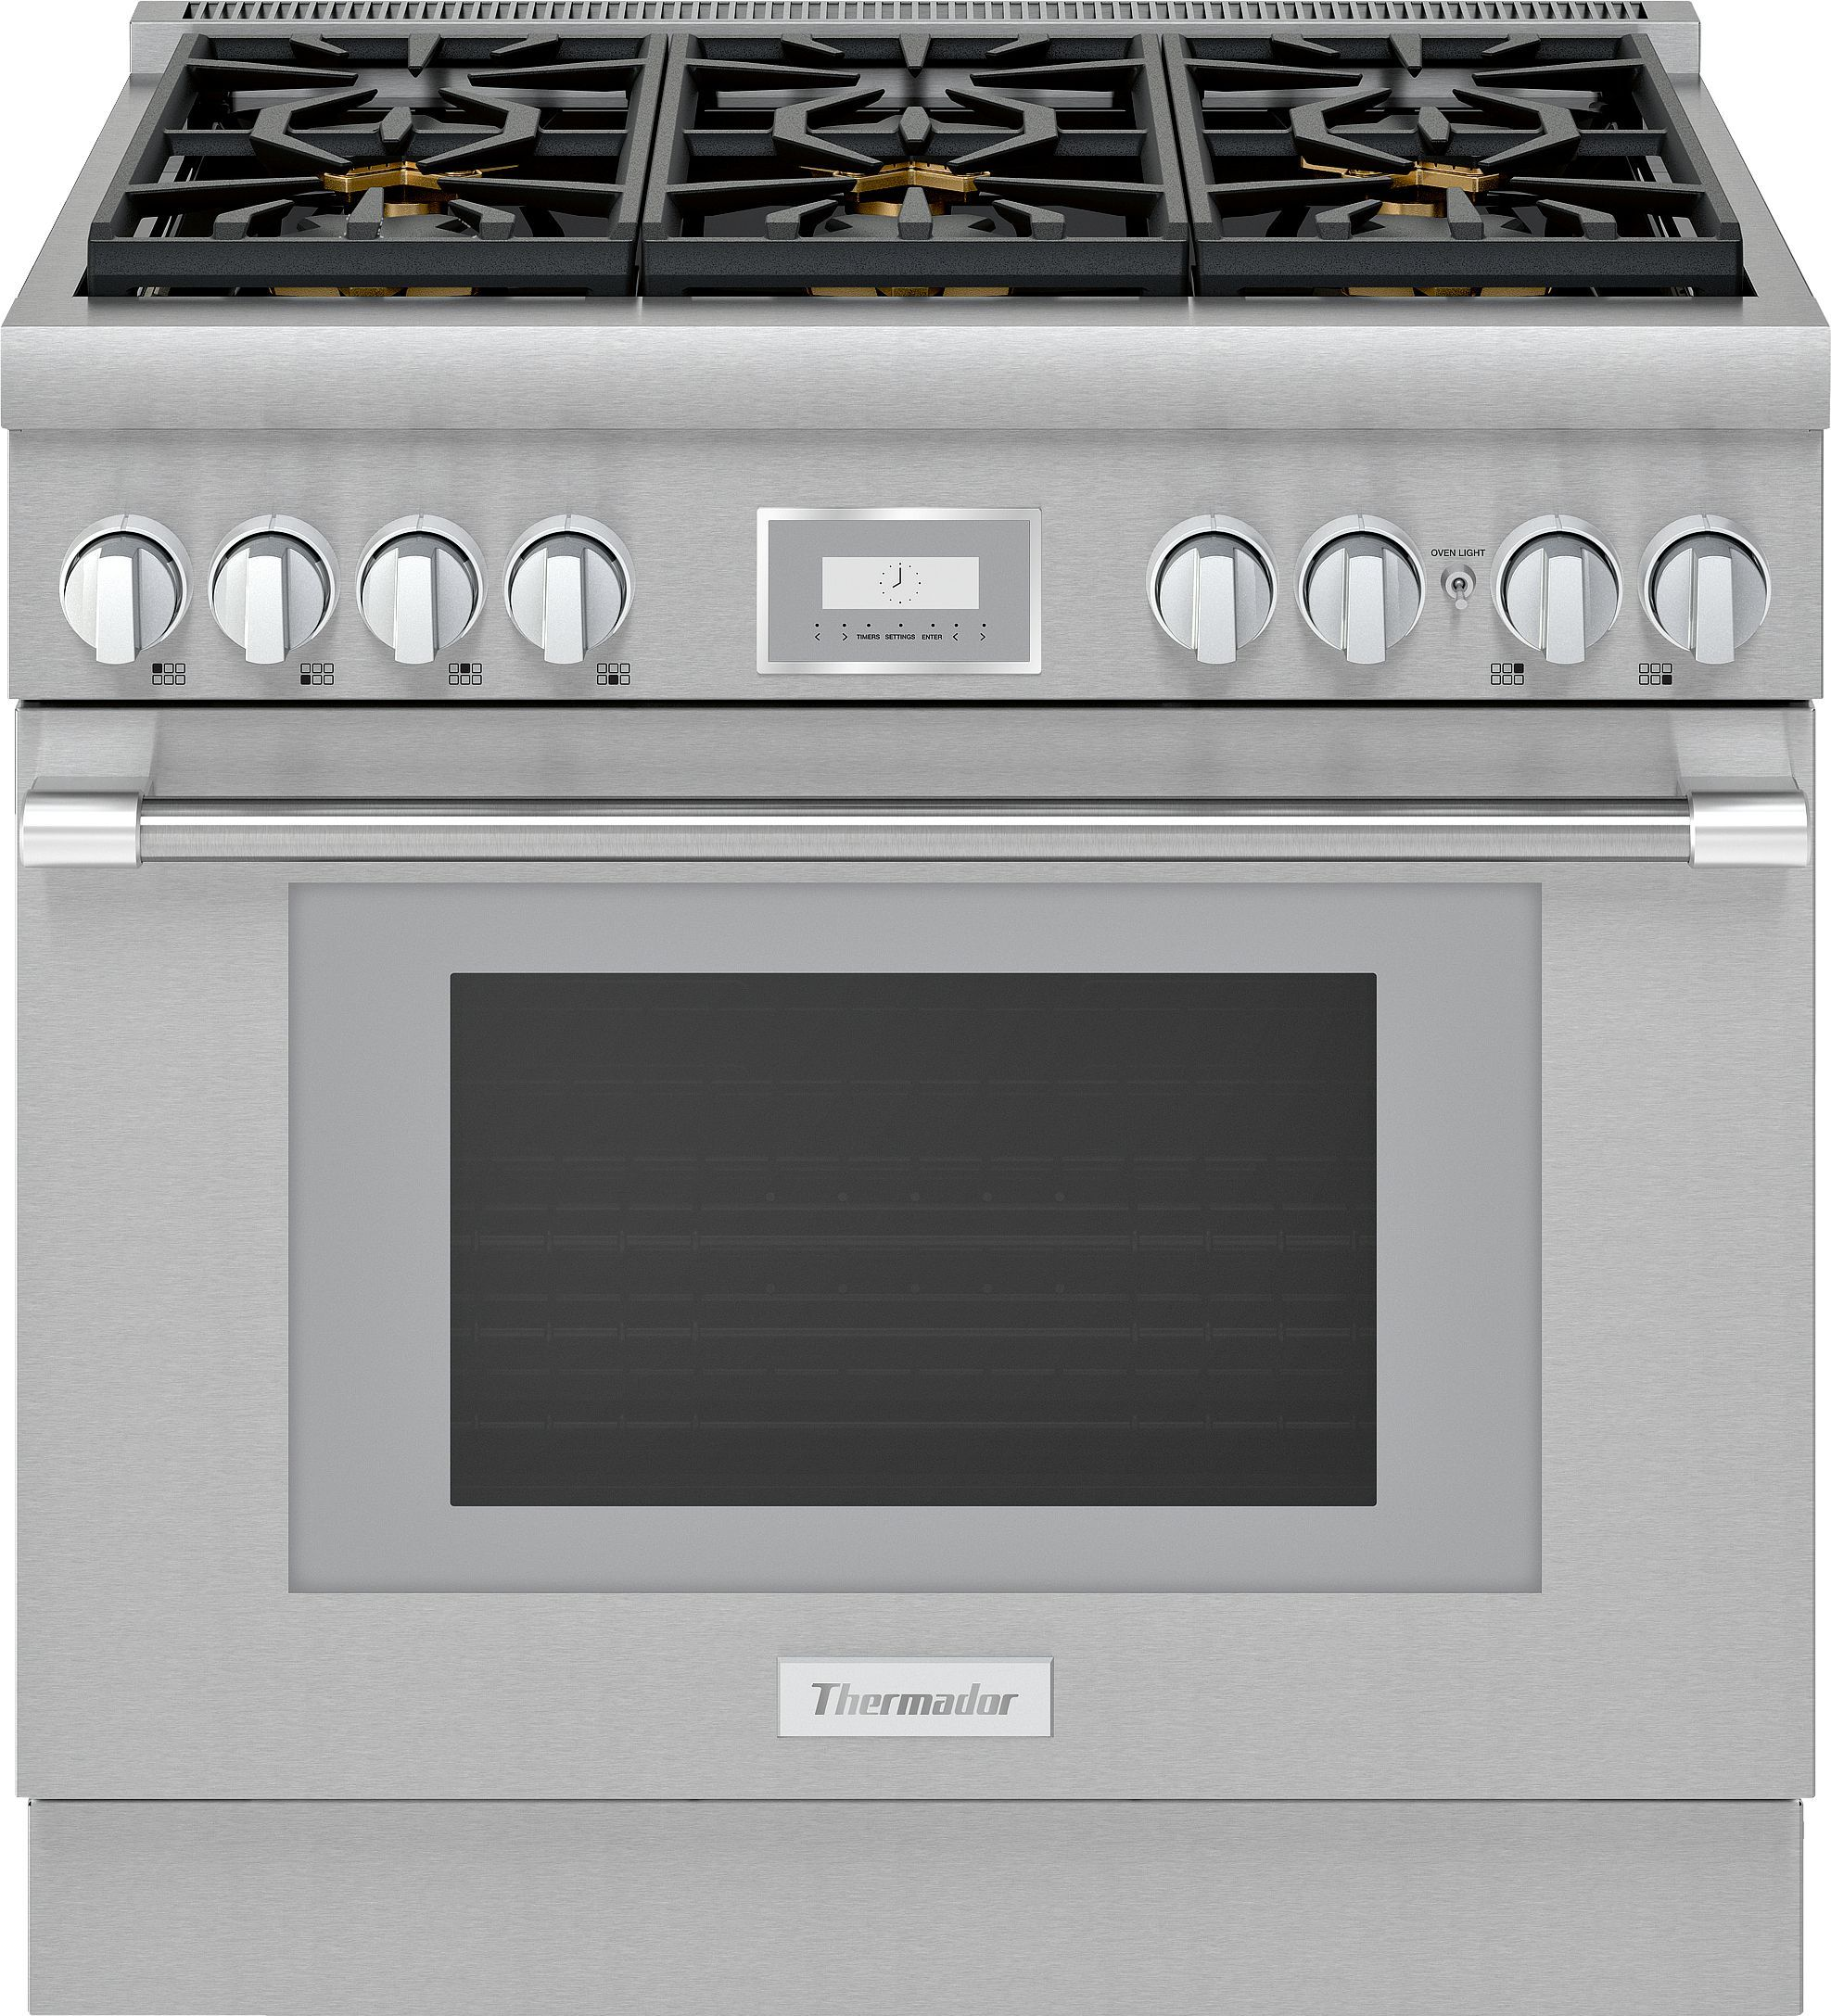 36 Inch Pro Harmony Standard Depth Gas Range Prg366wh Thermador Thermador Convection Range Range Cooker